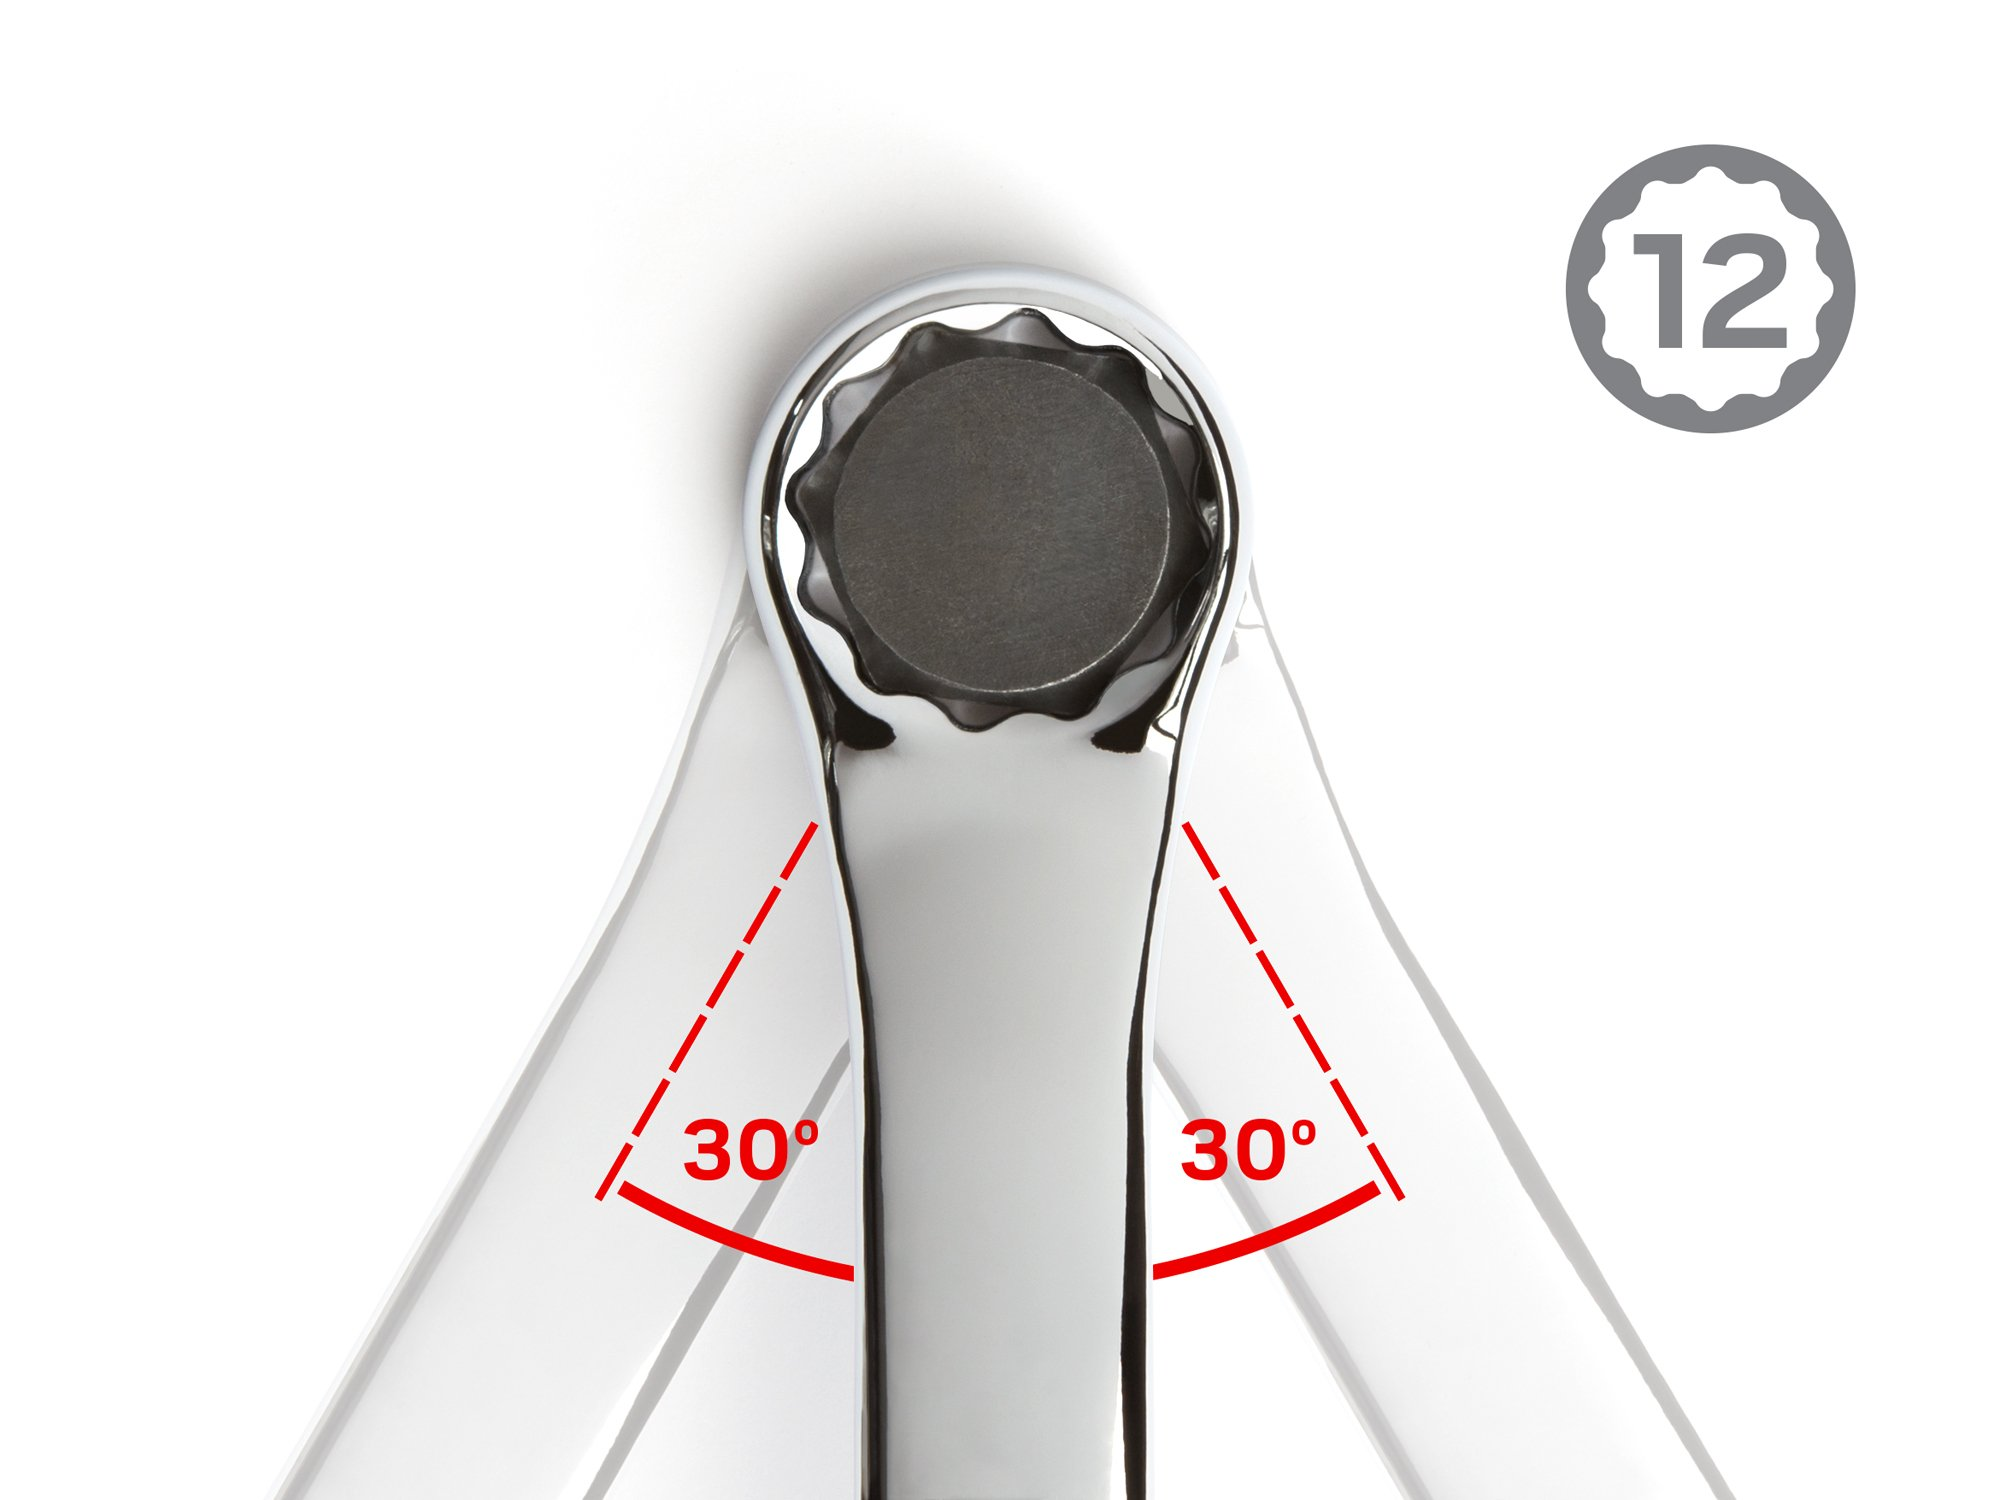 TEKTON 45-Degree Offset Box End Wrench Set with Roll-up Storage Pouch, Metric, 6 mm- 32 mm, 11-Piece | WBE24511 by TEKTON (Image #5)